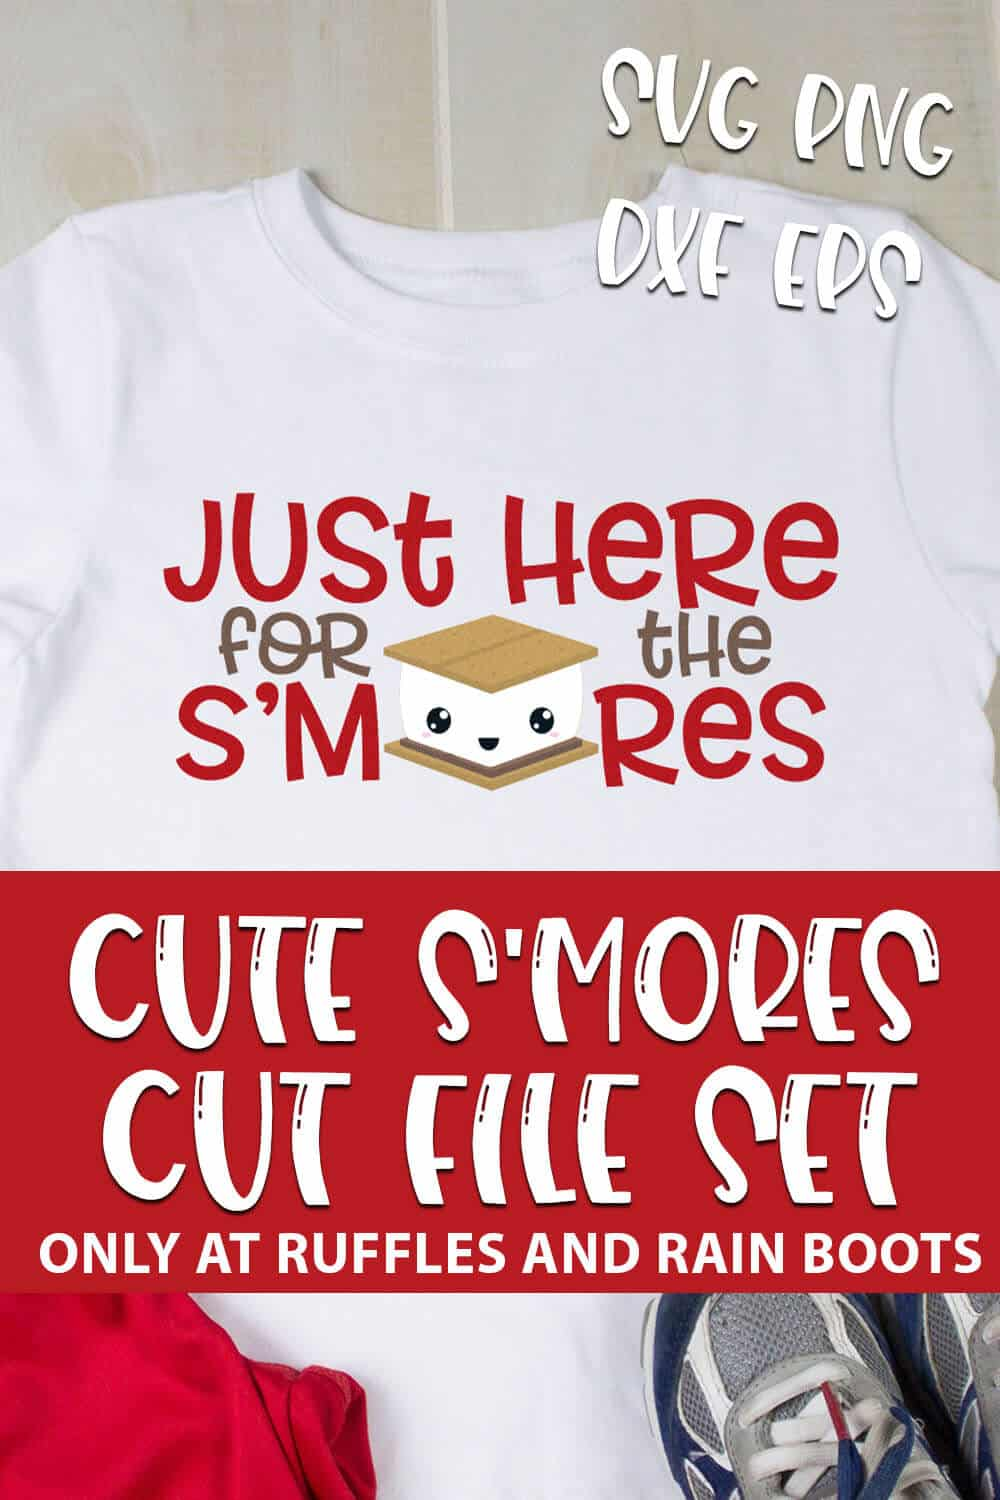 Just Here for the Smores cut file for cricut or silhouette with text which reads cute s'mores cut file set svg png dxf eps